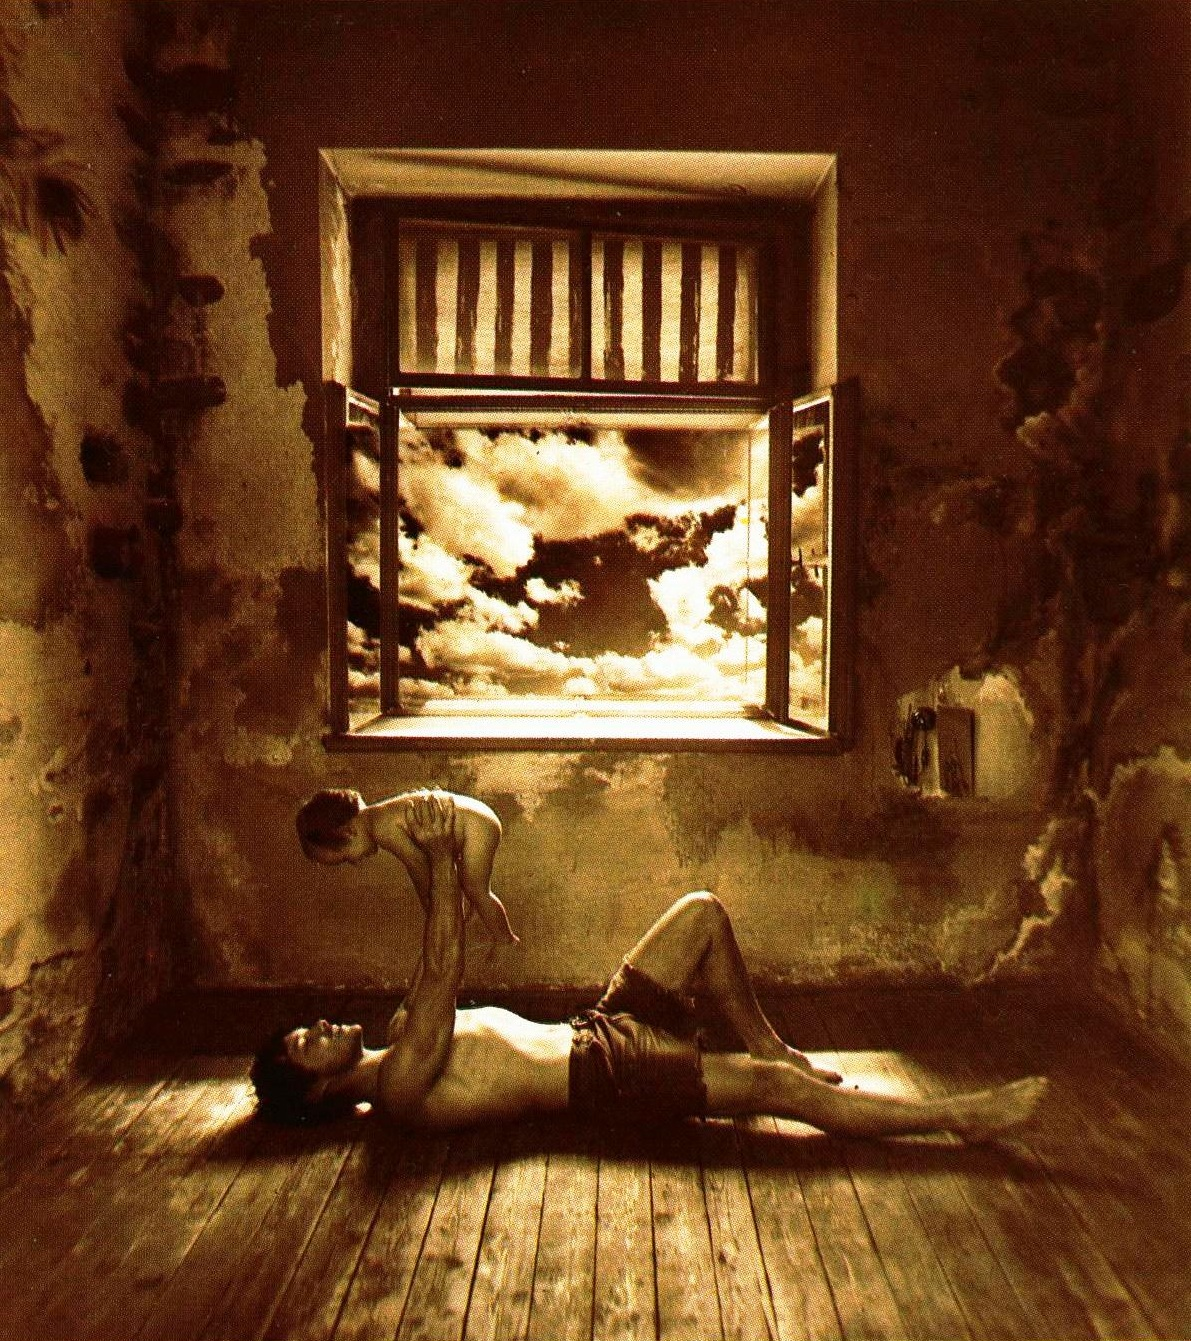 Jan Saudek | Beings Akin | Page 2